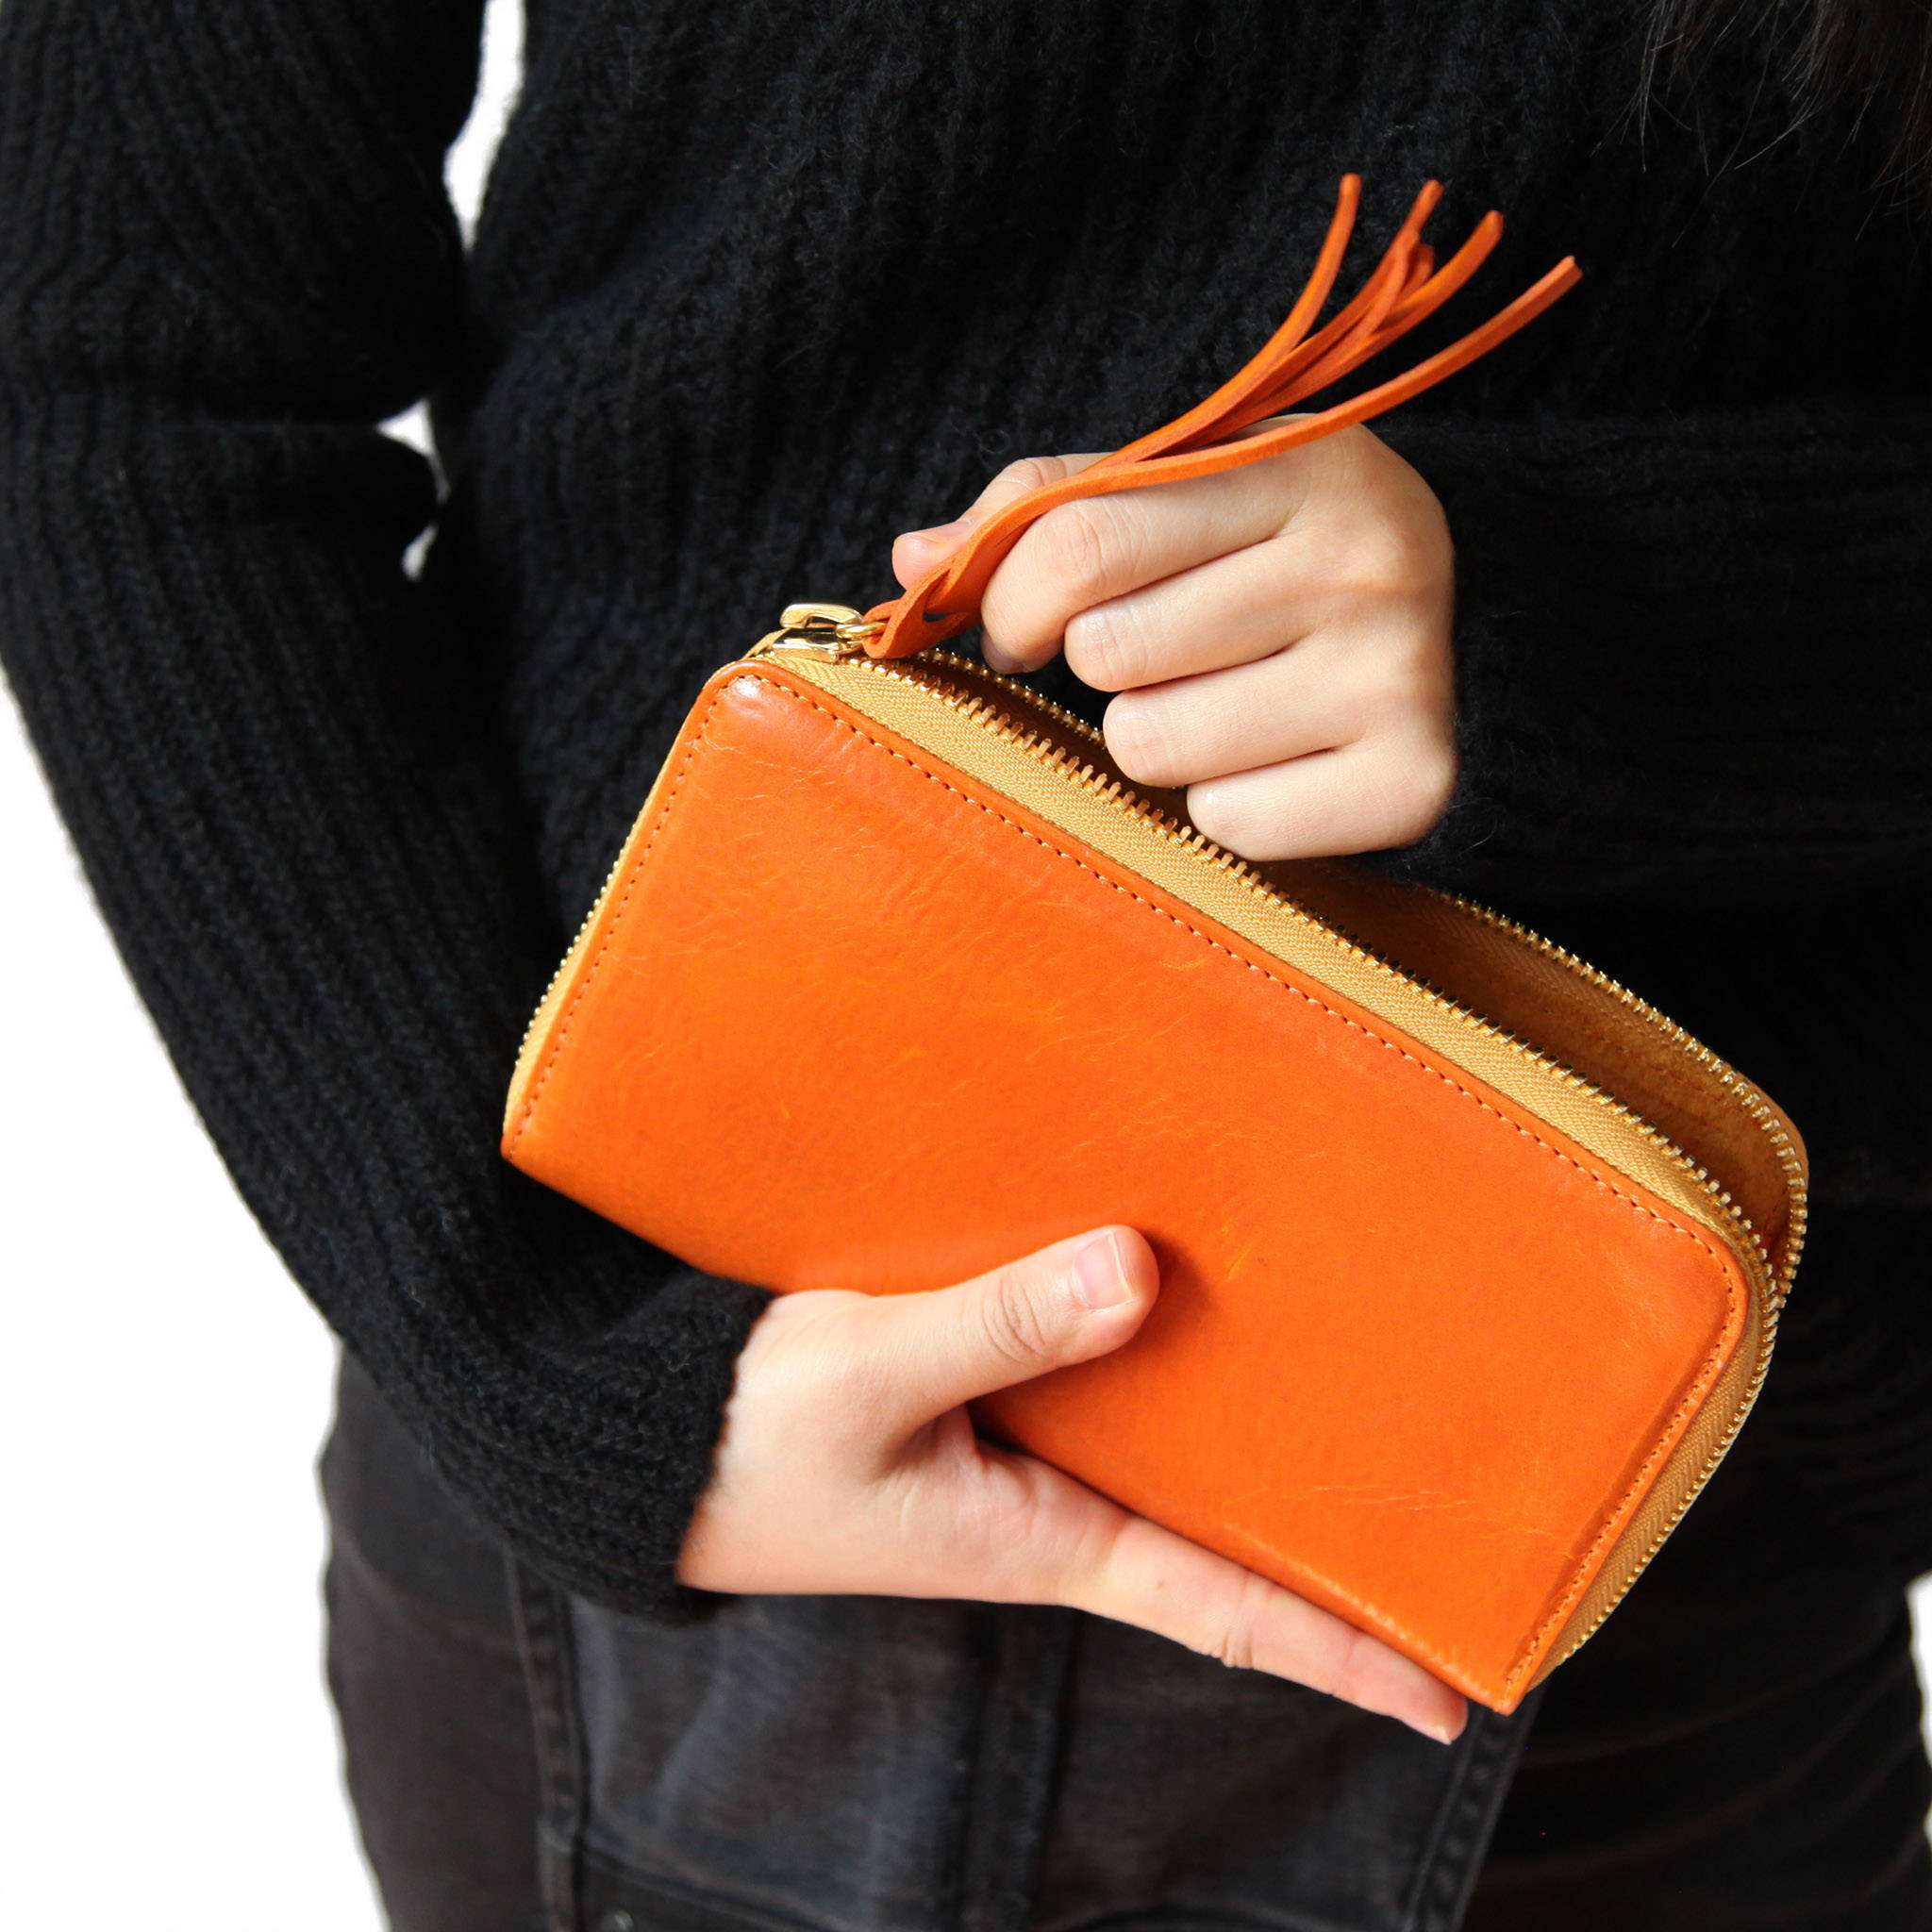 Woman zipping up Stick & Ball Vegetable-tanned Italian leather zip/clutch wallet in orange